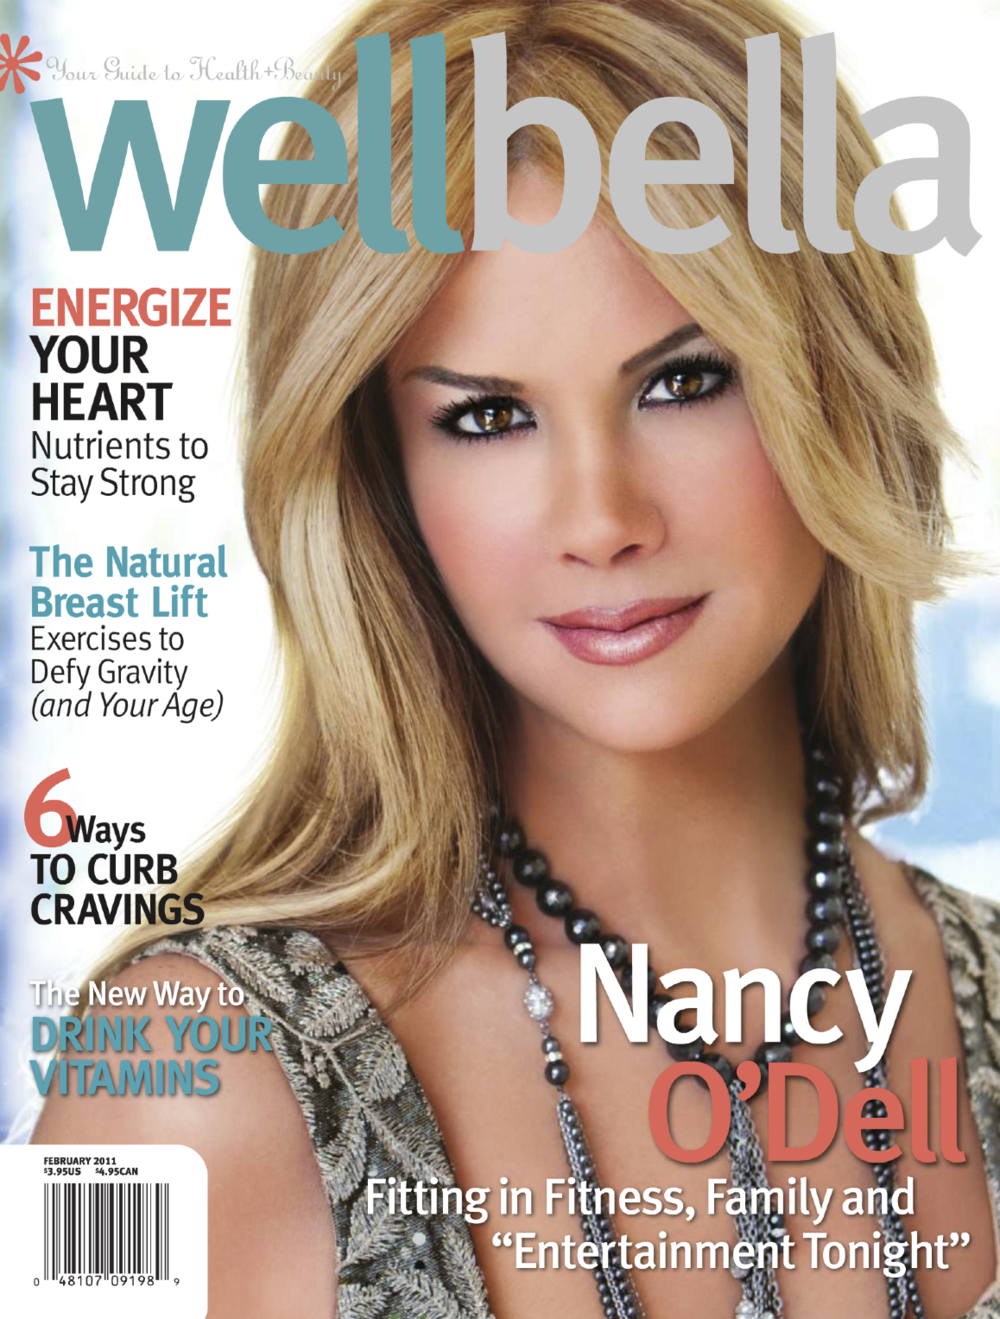 WELLBELLA • FEB. 2011